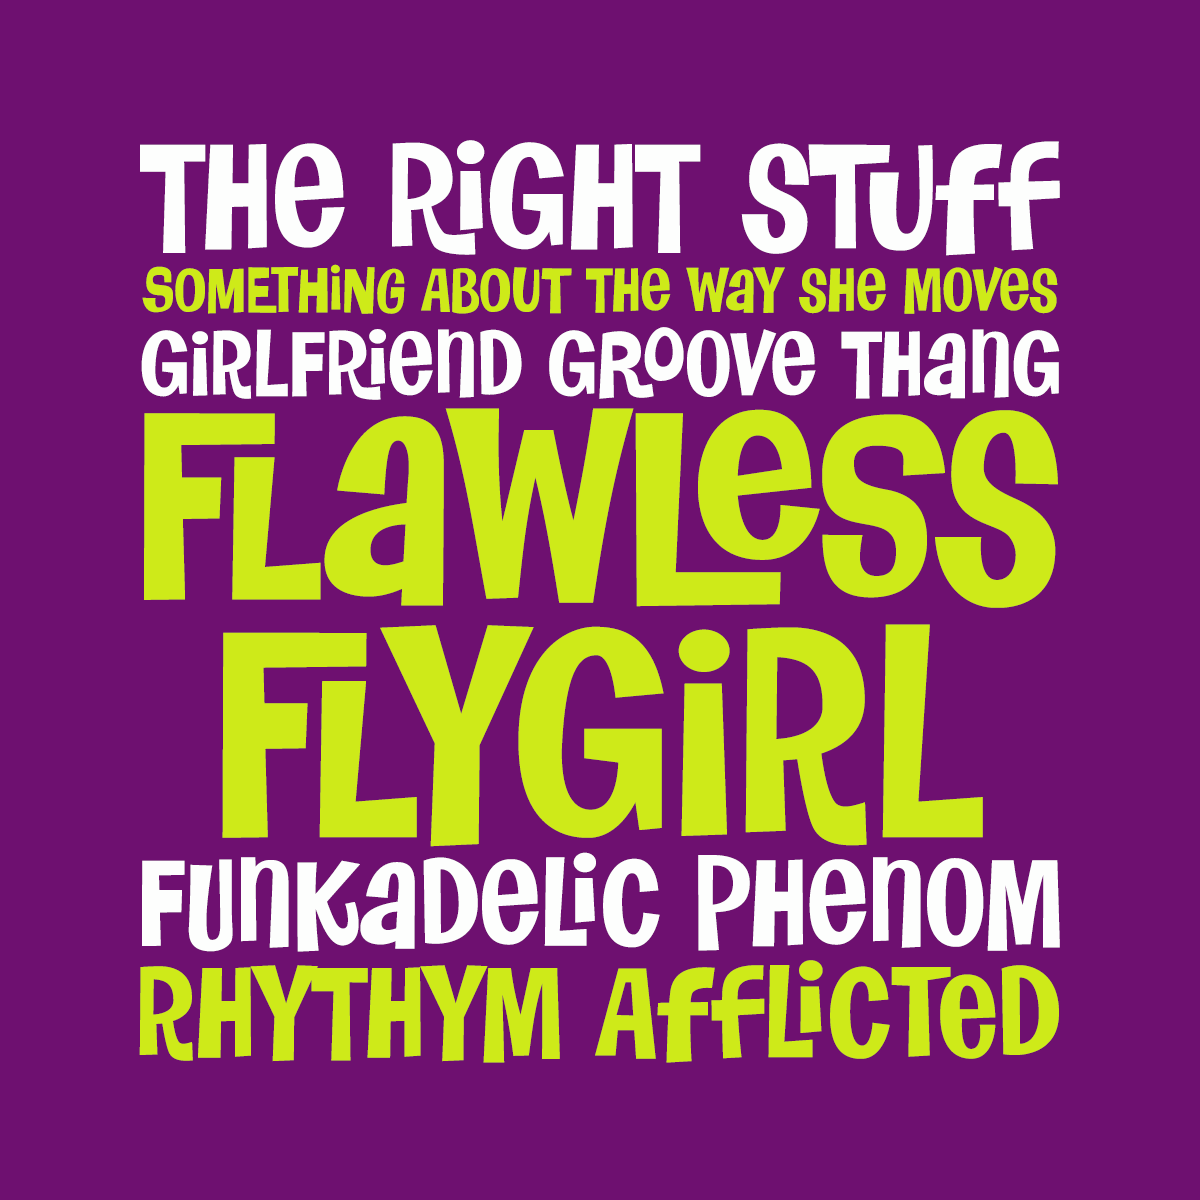 Flawless Flygirl by Pink Broccoli